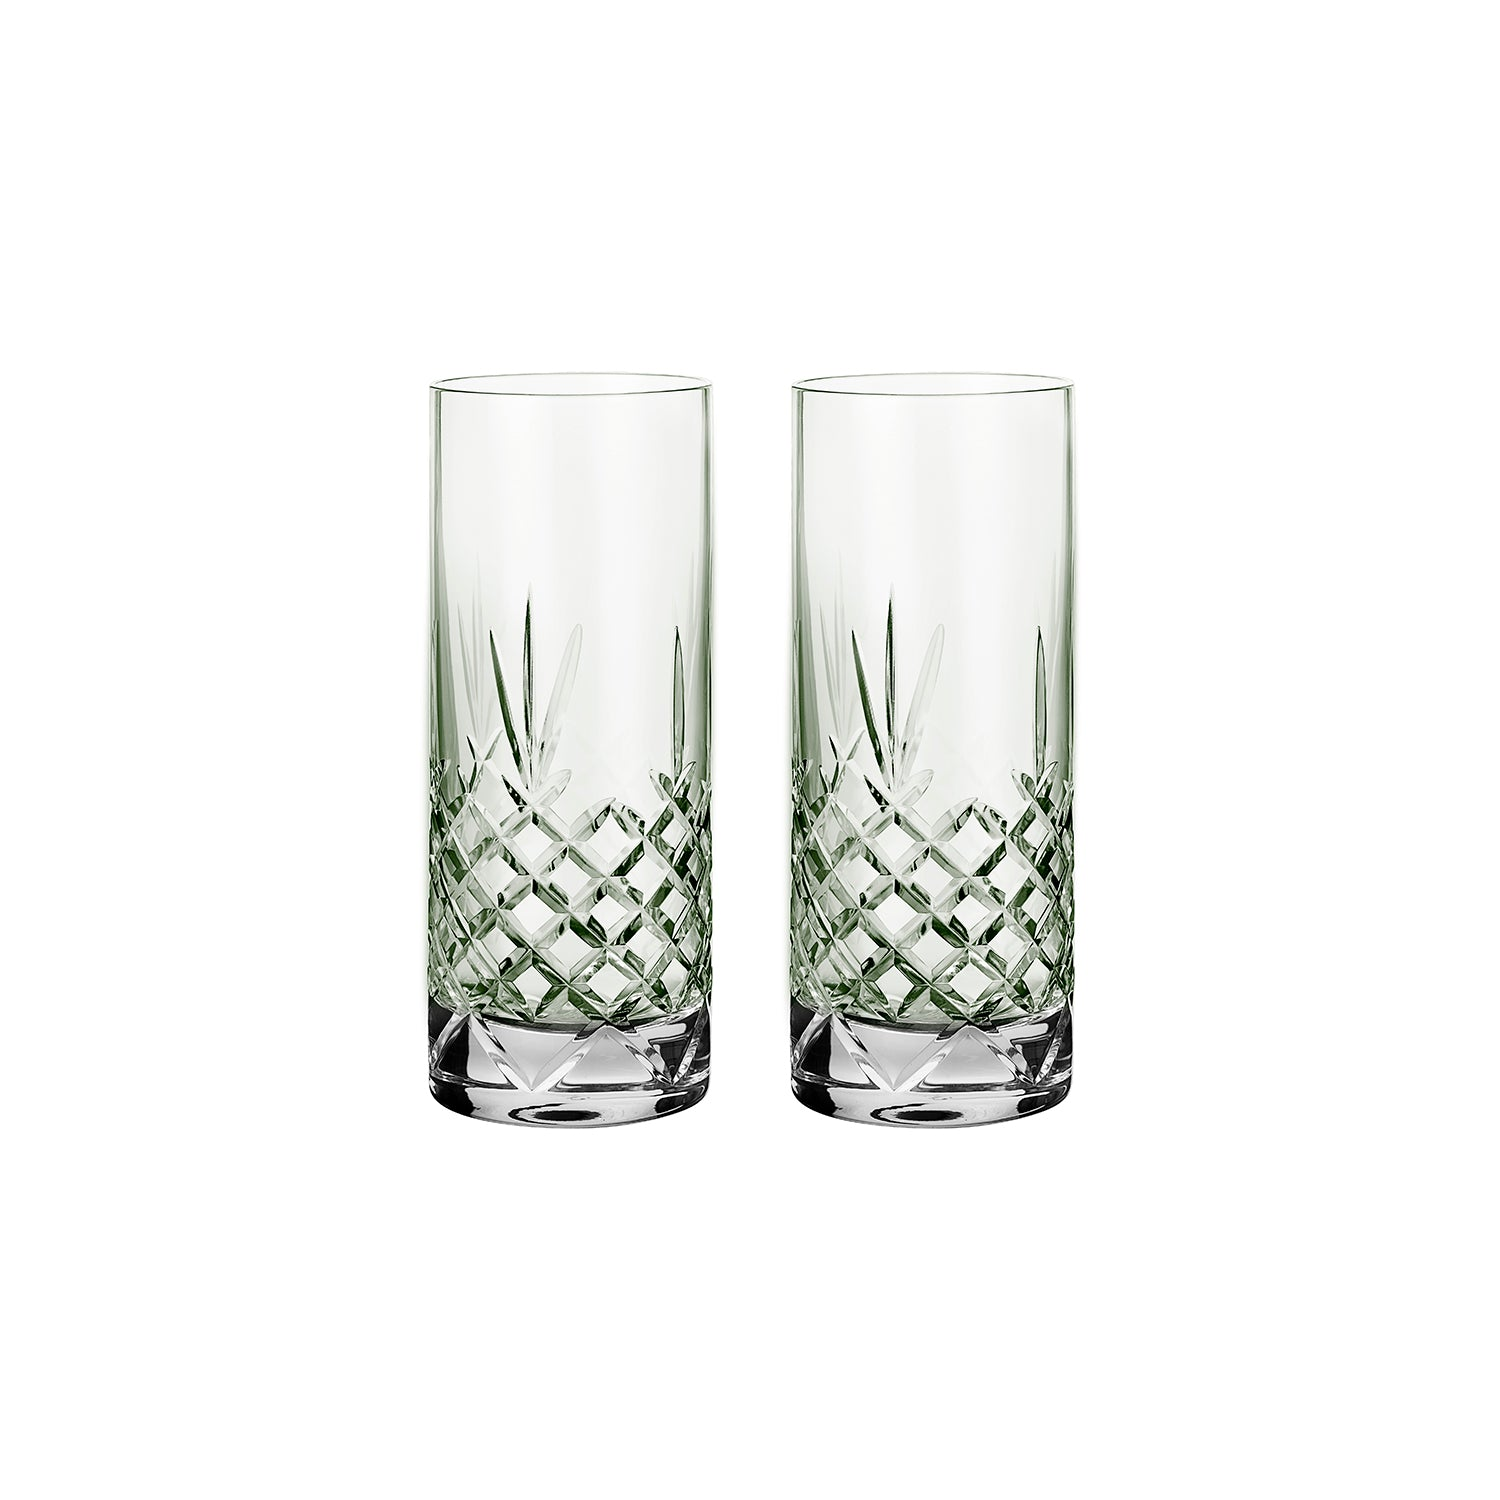 Crispy Highball Emerald // Green - 2 Pieces